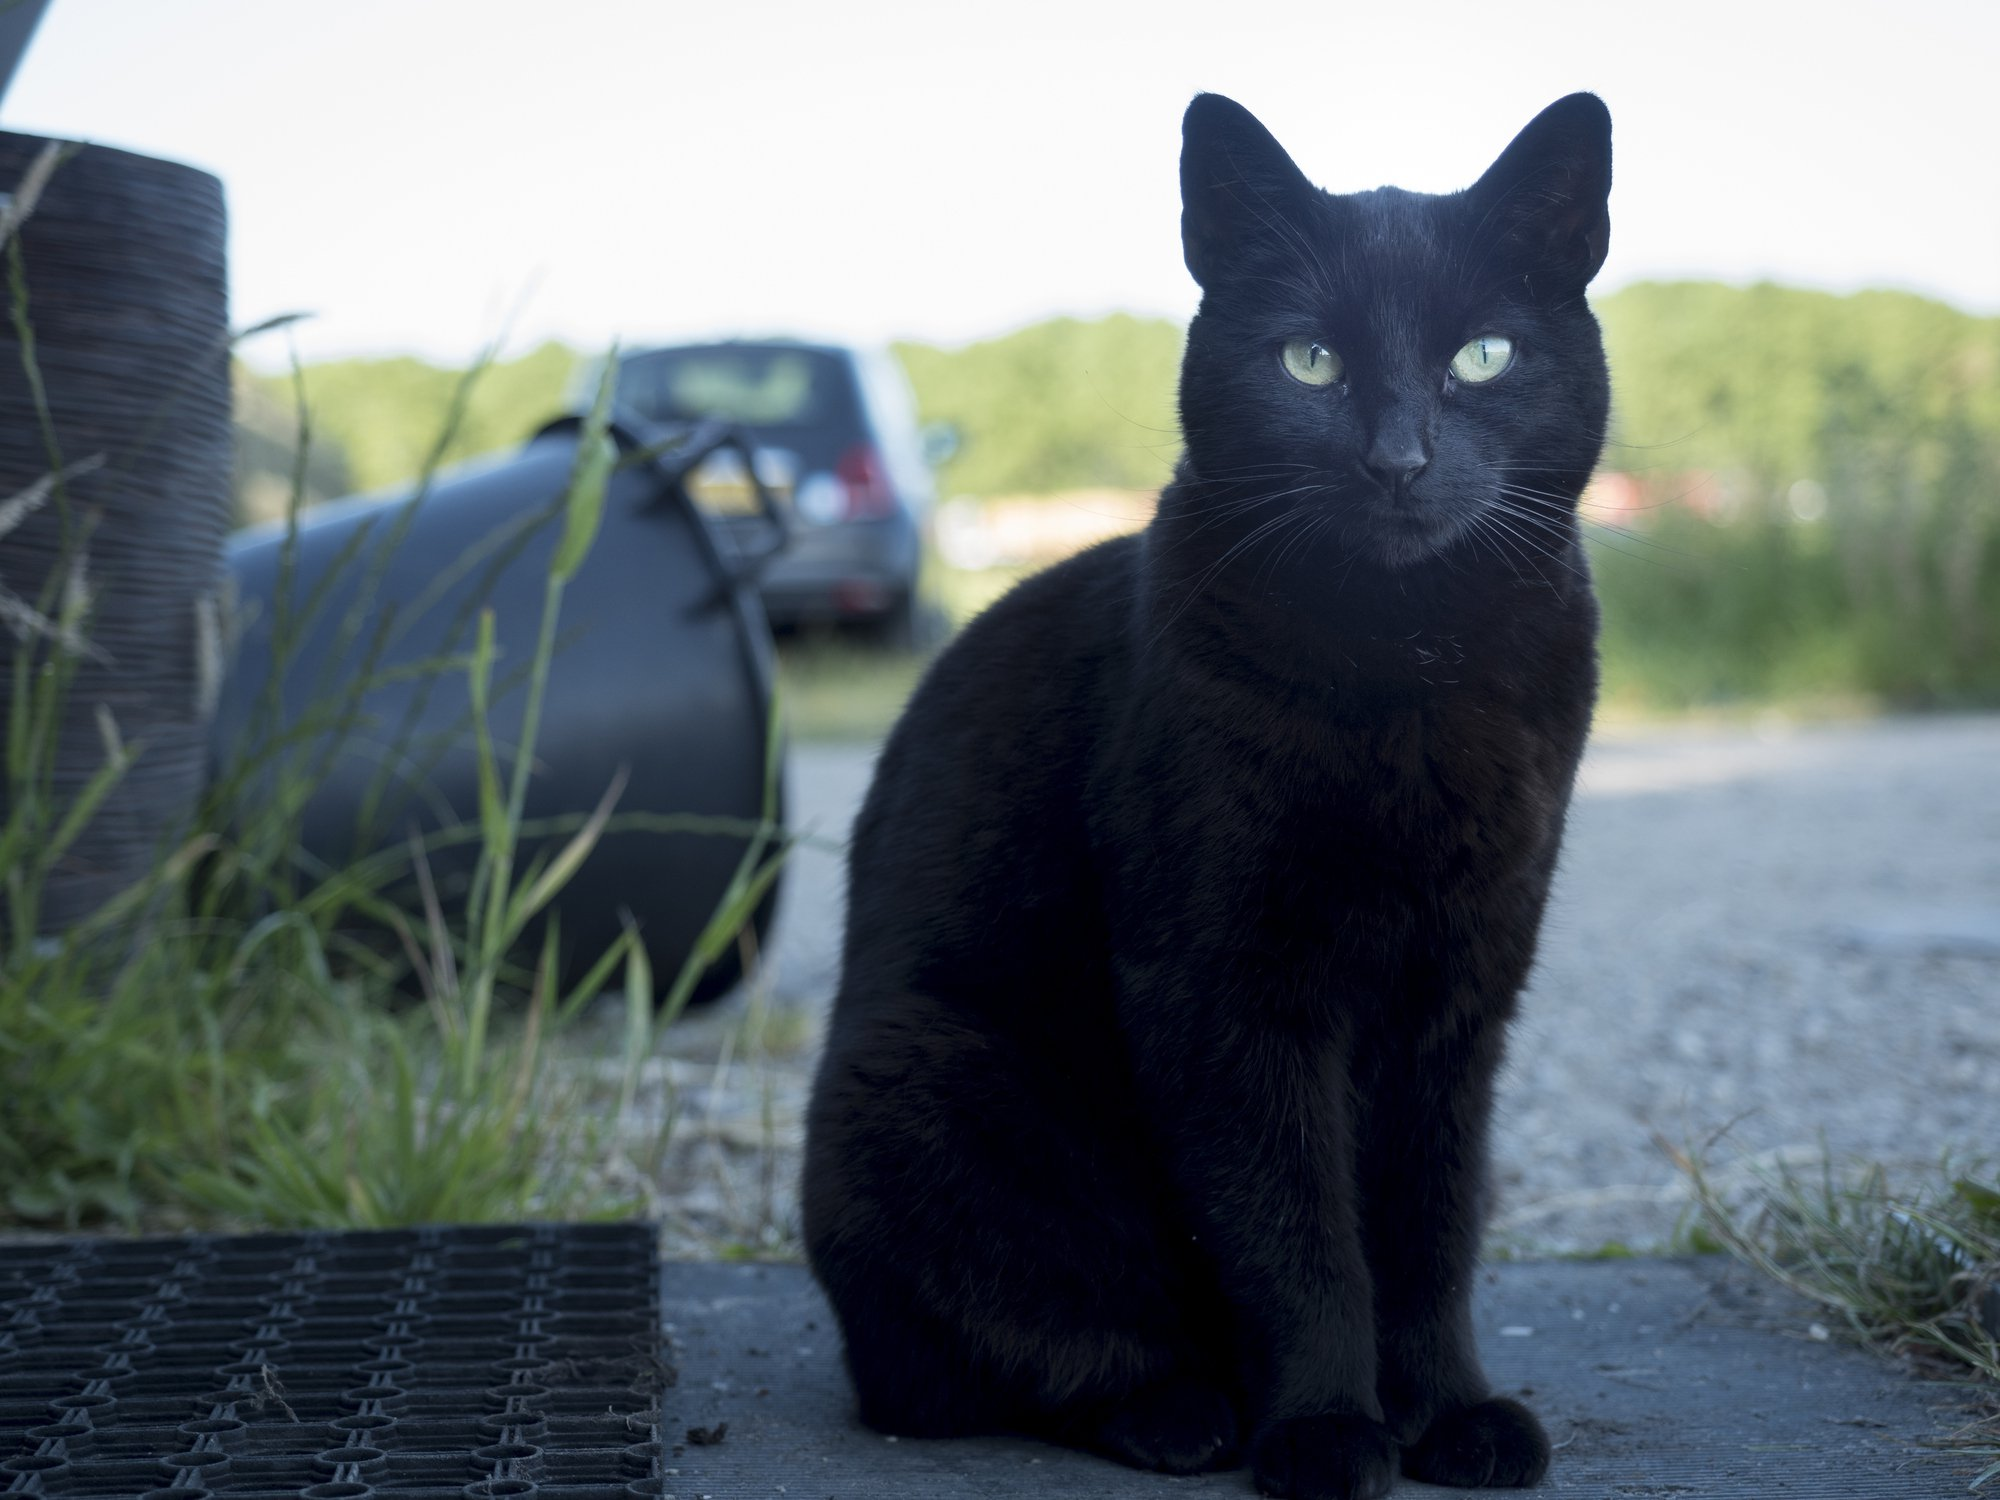 Here's why we celebrate National Black Cat Day